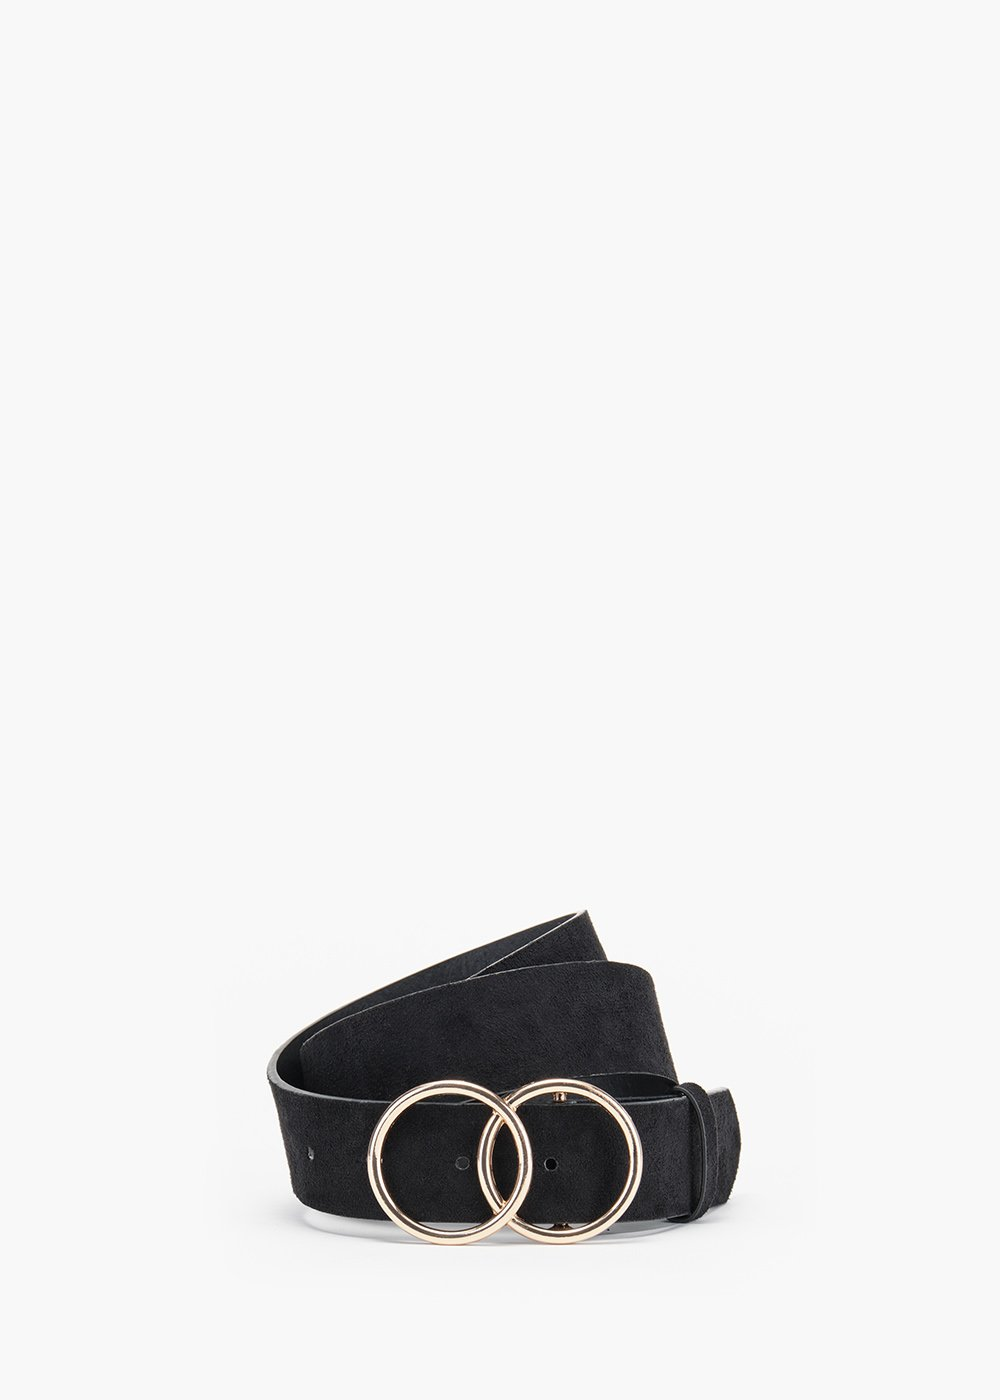 Carly belt in eco leather with double ring closure - Black - Woman